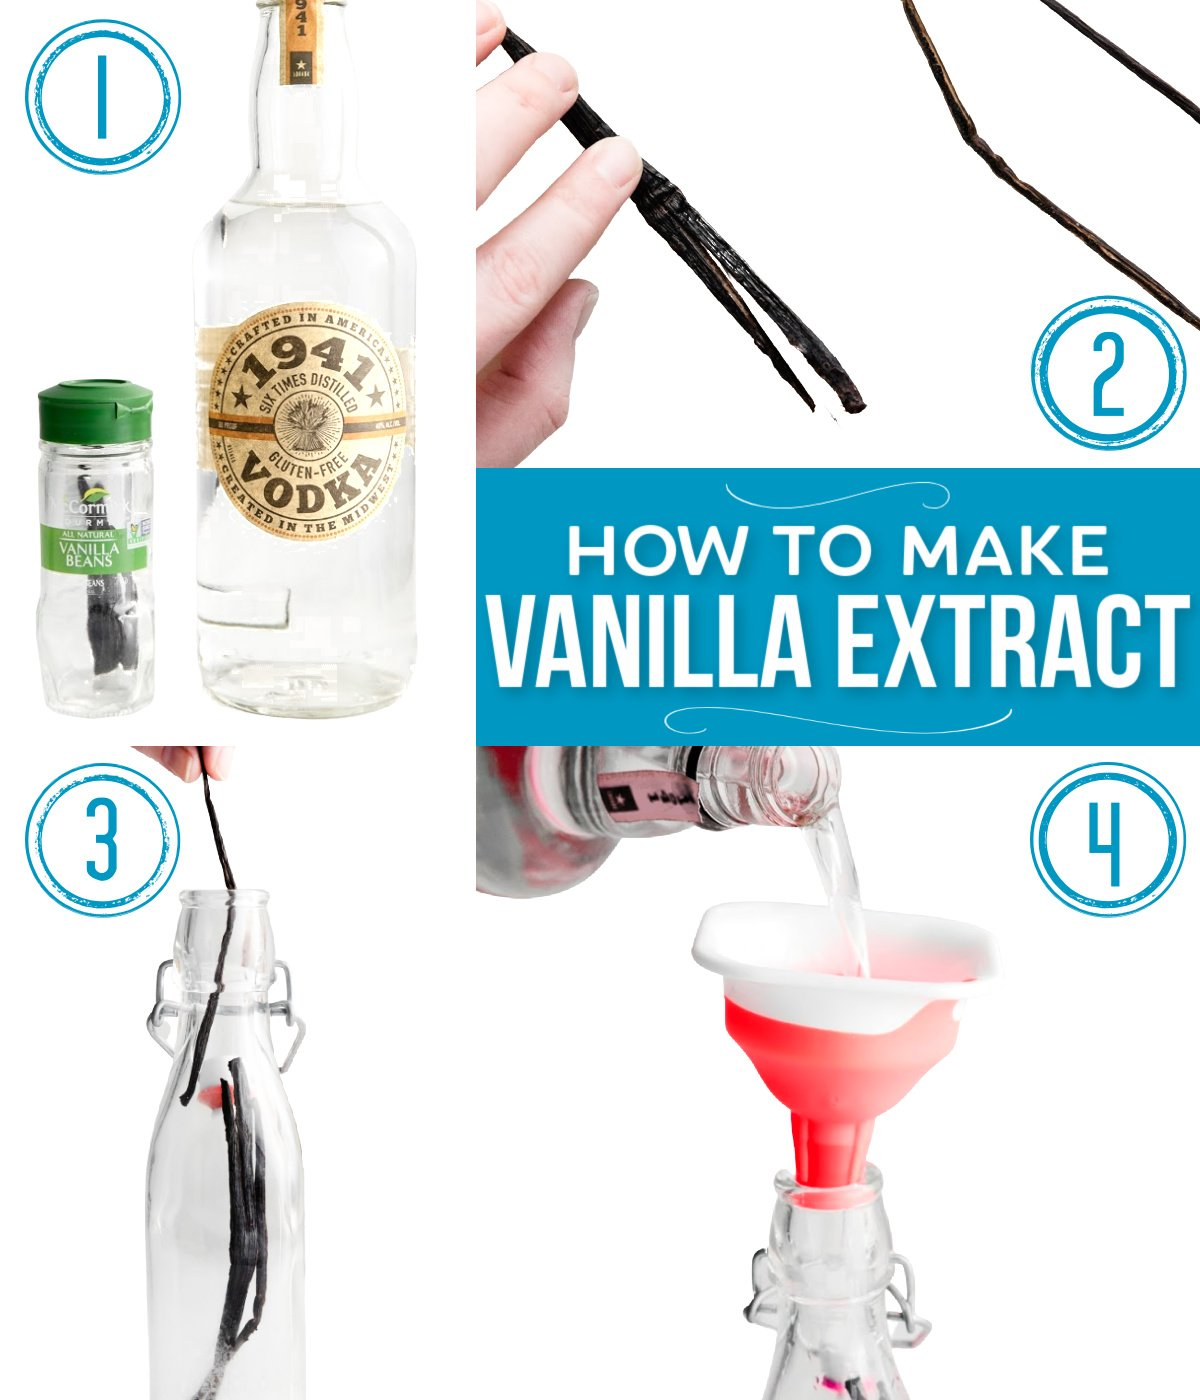 collage showing steps of how to make homemade vanilla extract.